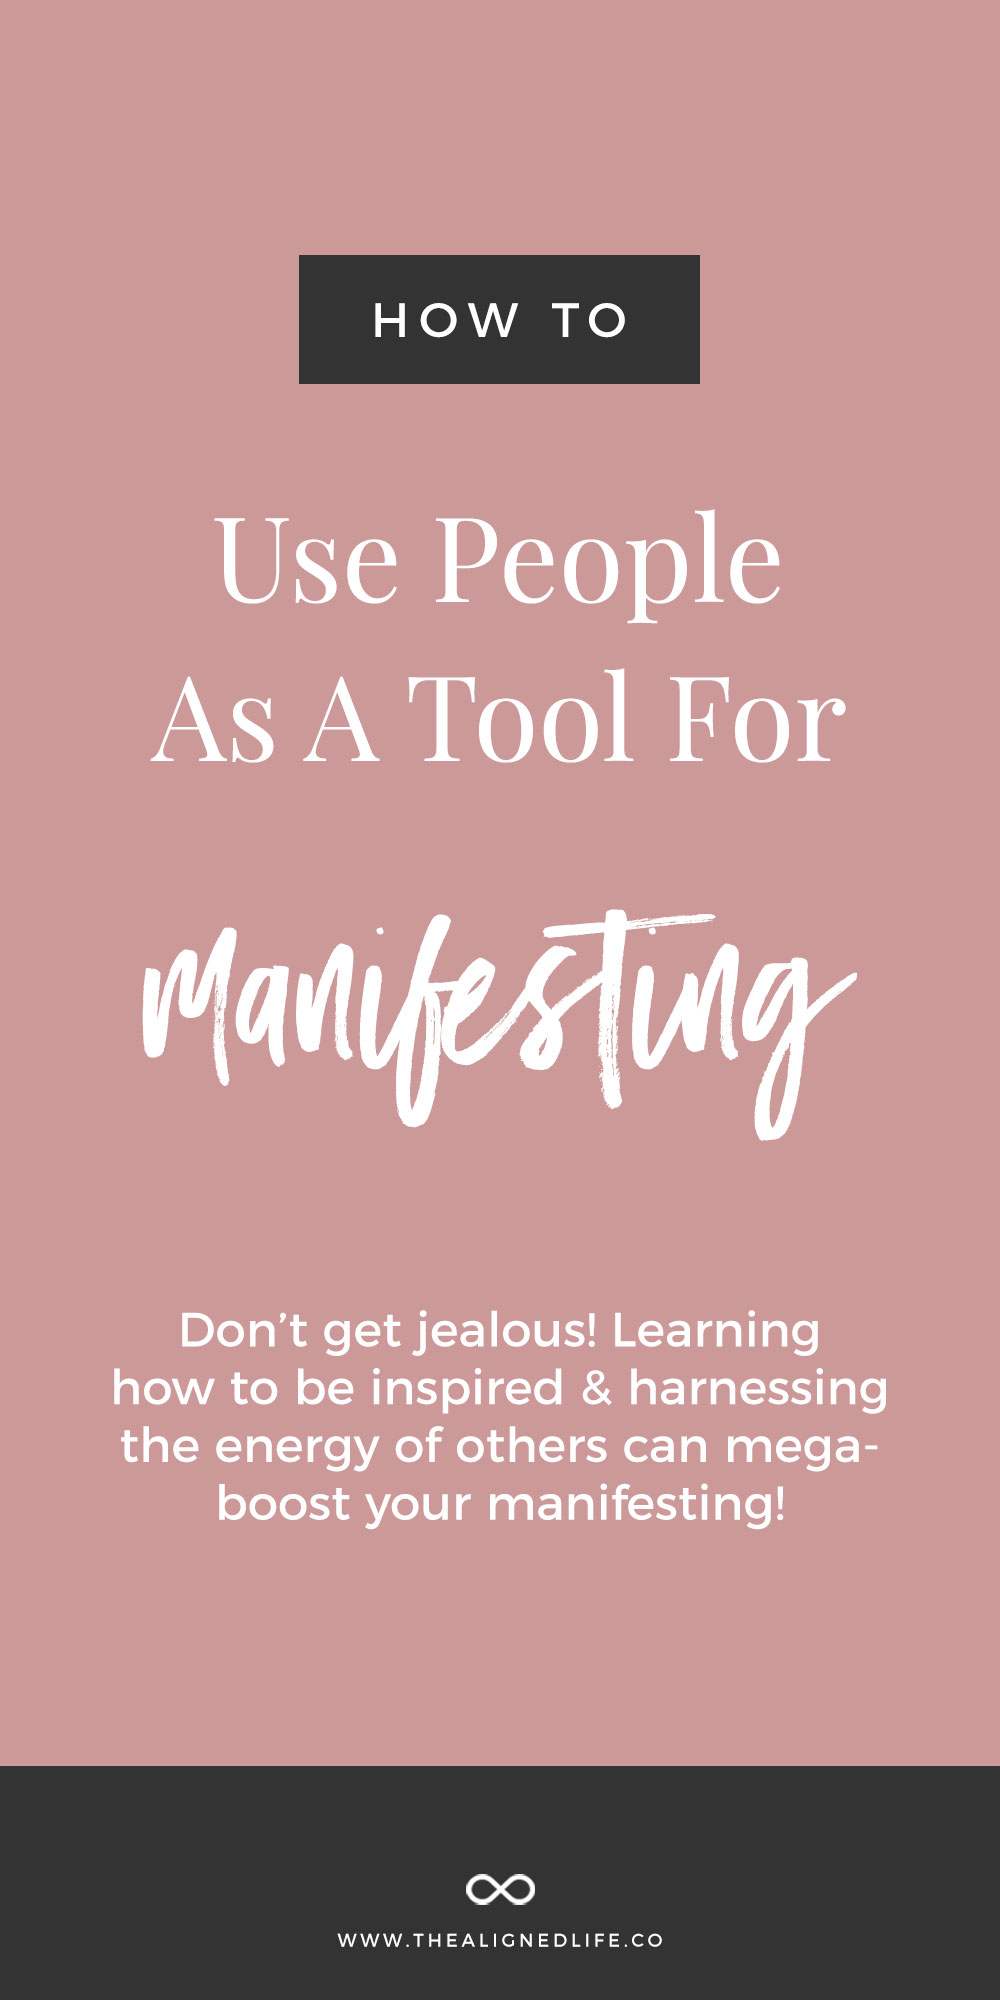 How To Use People As A Tool For Manifesting